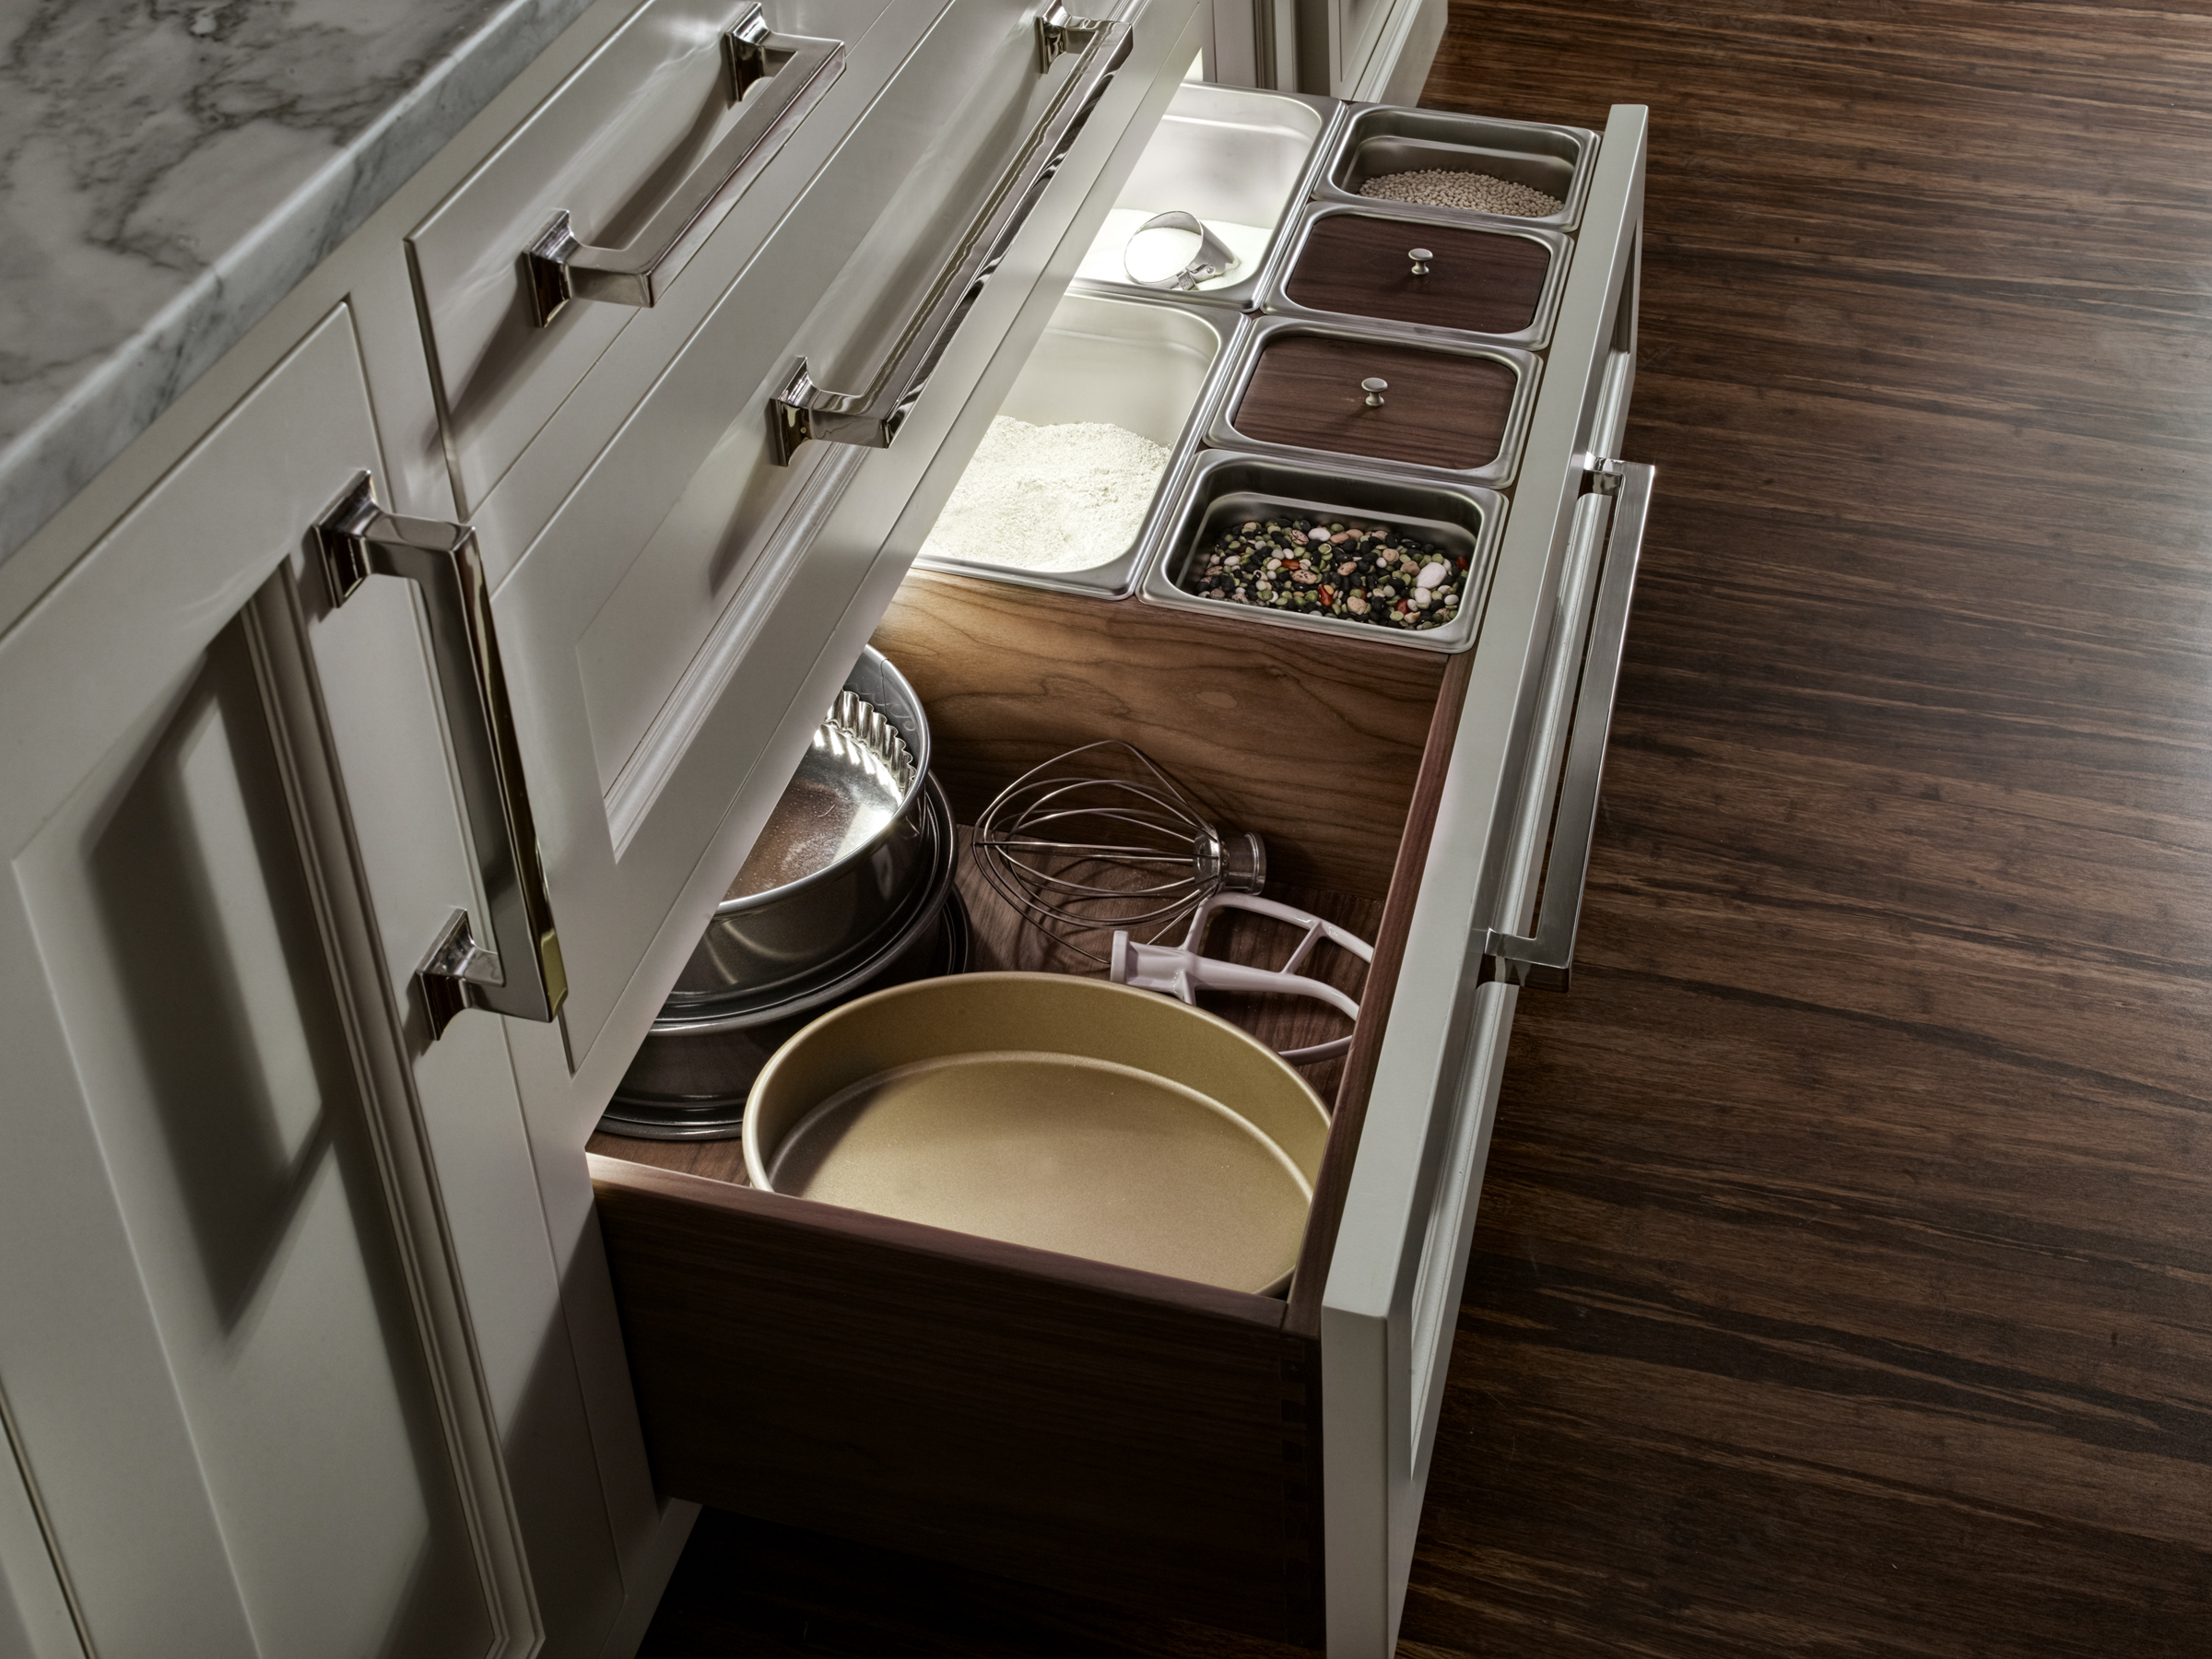 Dry goods drawer